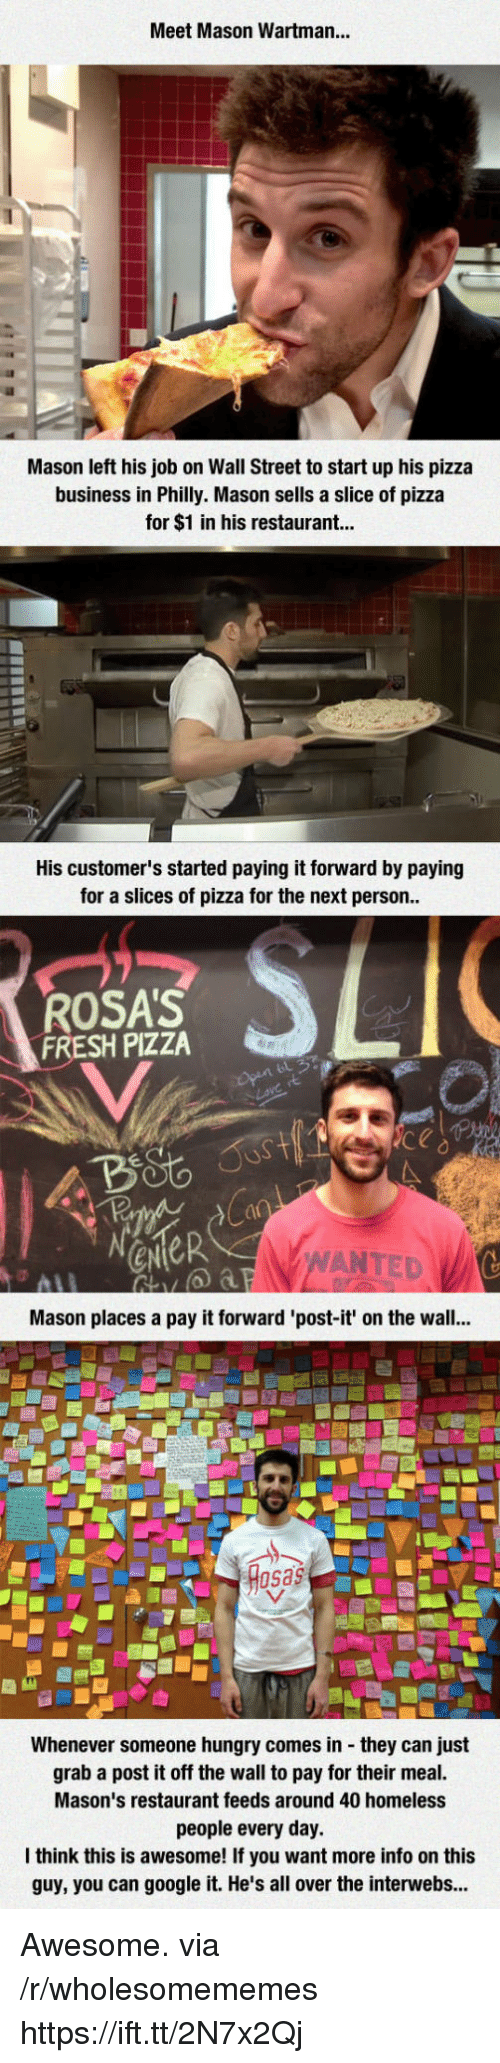 Fresh, Google, and Homeless: Meet Mason Wartman...  Mason left his job on Wall Street to start up his pizza  business in Philly. Mason sells a slice of pizza  for $1 in his restaurant...  His customer's started paying it forward by paying  for a slices of pizza for the next person  ROSA'S  FRESH PIZZA  ANTED  Mason places a pay it forward 'post-it' on the wall...  sas  Whenever someone hungry comes in they can just  grab a post it off the wall to pay for their meal.  Mason's restaurant feeds around 40 homeless  people every day.  think this is awesome! If you want more info on this  guy, you can google it. He's all over the interwebs... Awesome. via /r/wholesomememes https://ift.tt/2N7x2Qj